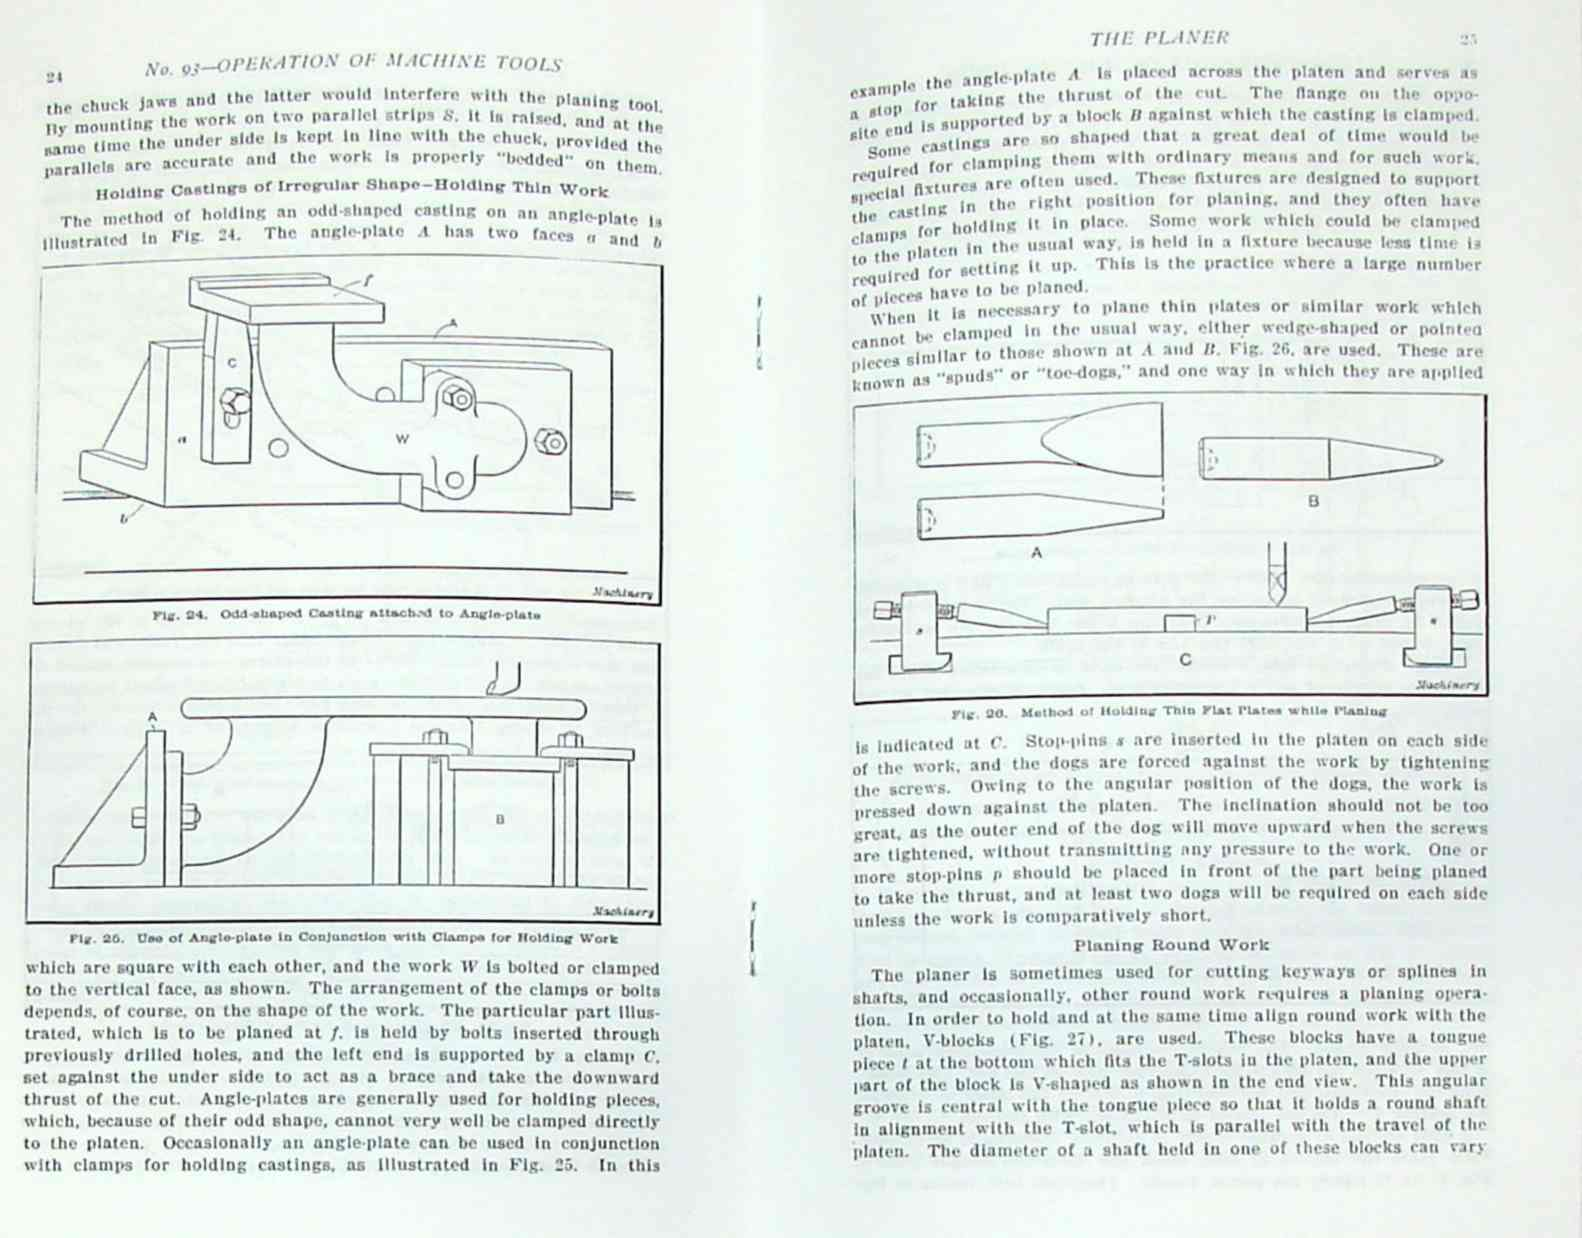 Operations Manual for Shaper, Planer & Slotter Machines